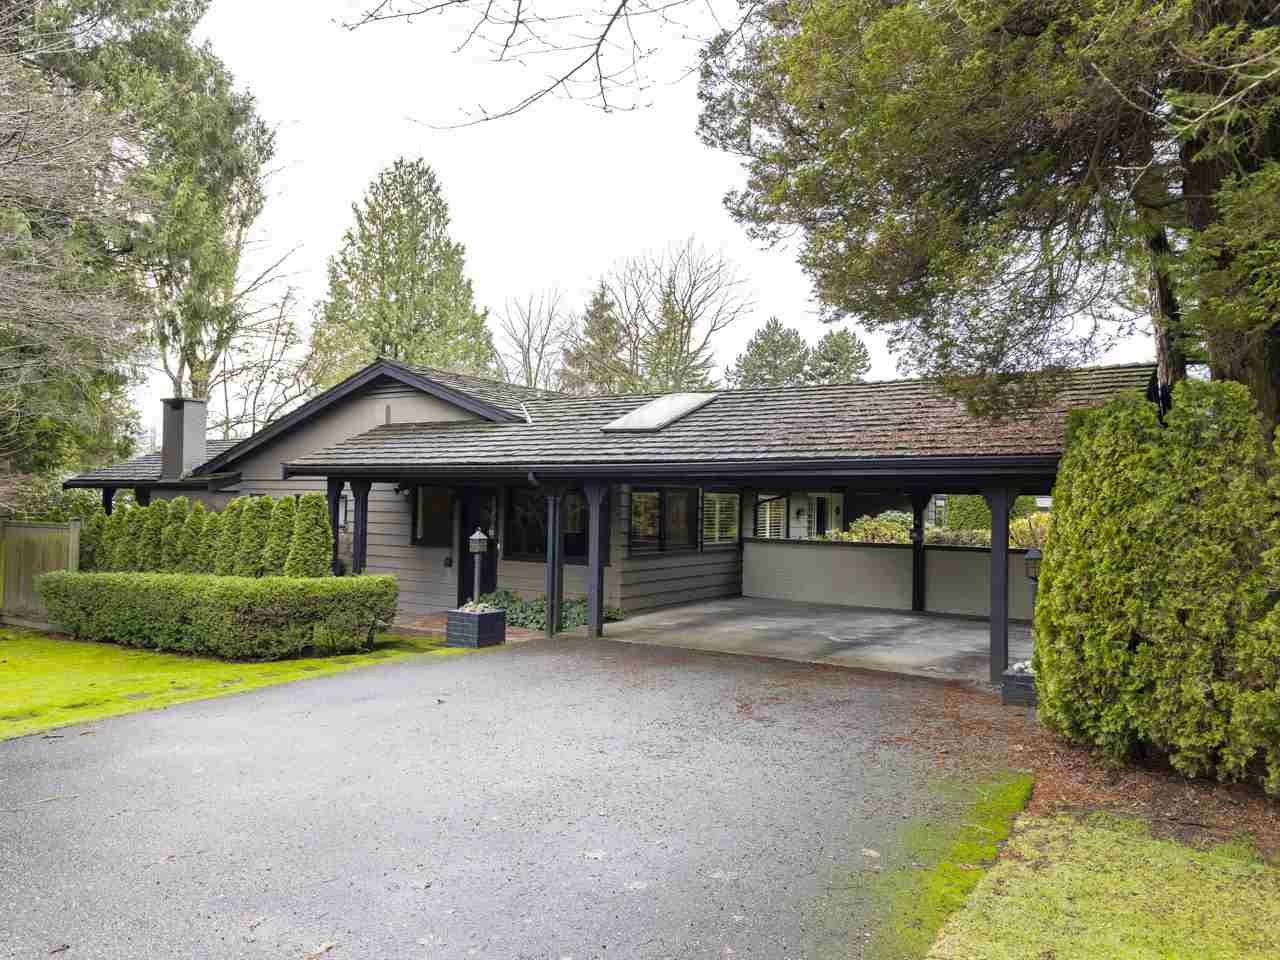 1308 W 54TH AVENUE - South Granville House/Single Family for sale, 4 Bedrooms (R2528346) - #9